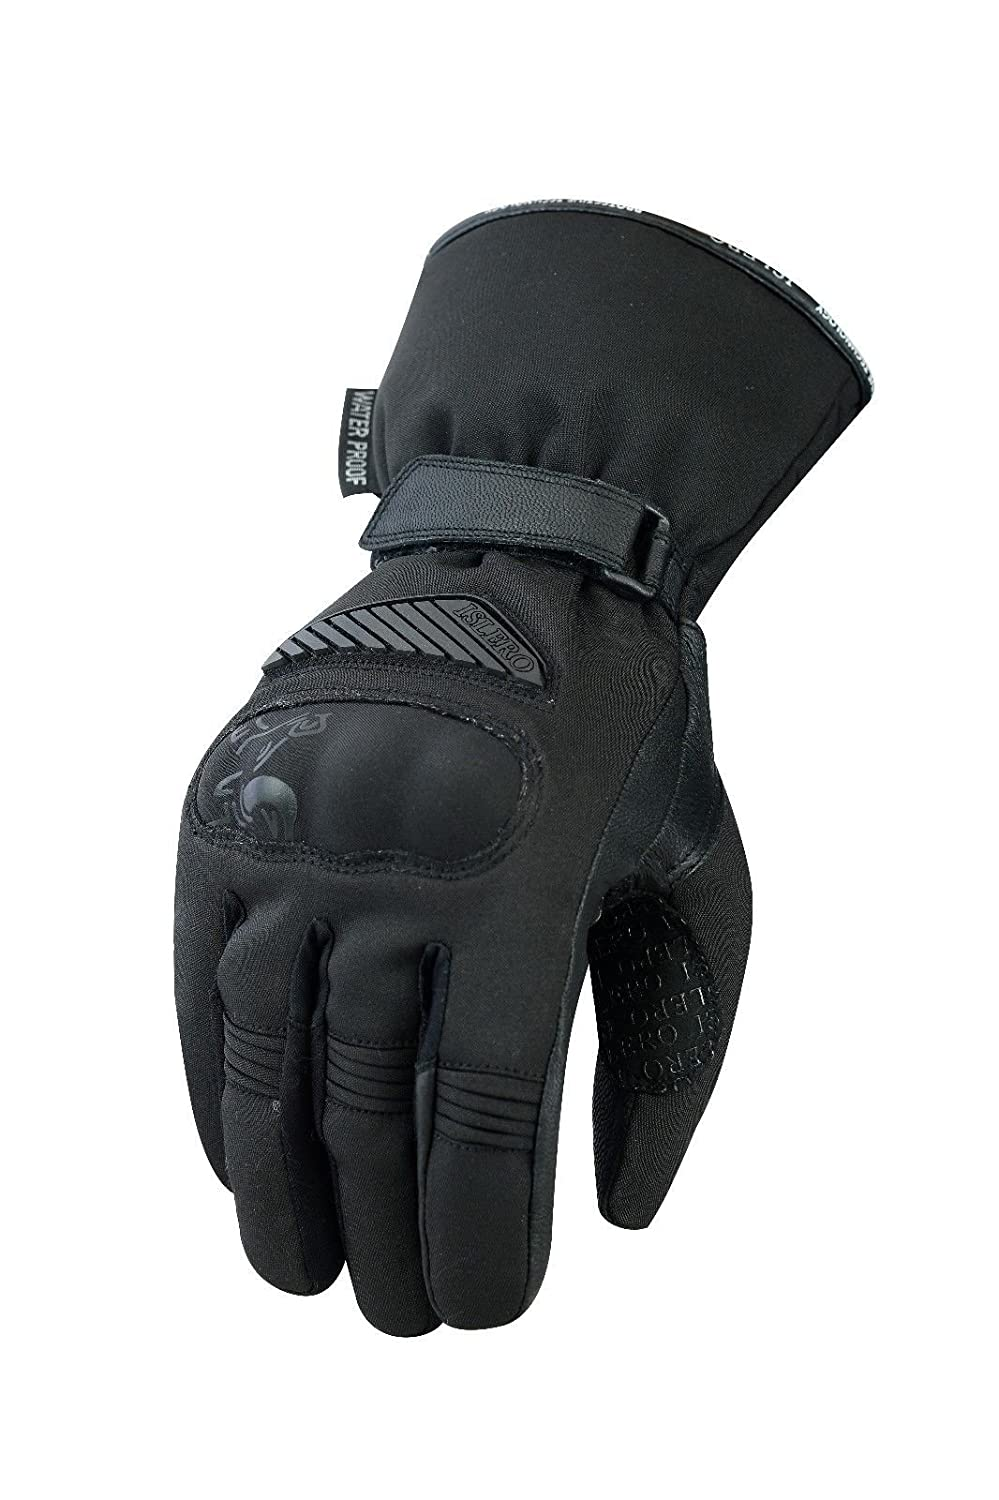 Islero Leather Winter Thermal Windproof Waterproof Motorbike Motorcycle Gloves Racing Thinsulate Knuckle Protection Tempest Hipora Smartphone Touch Compatible